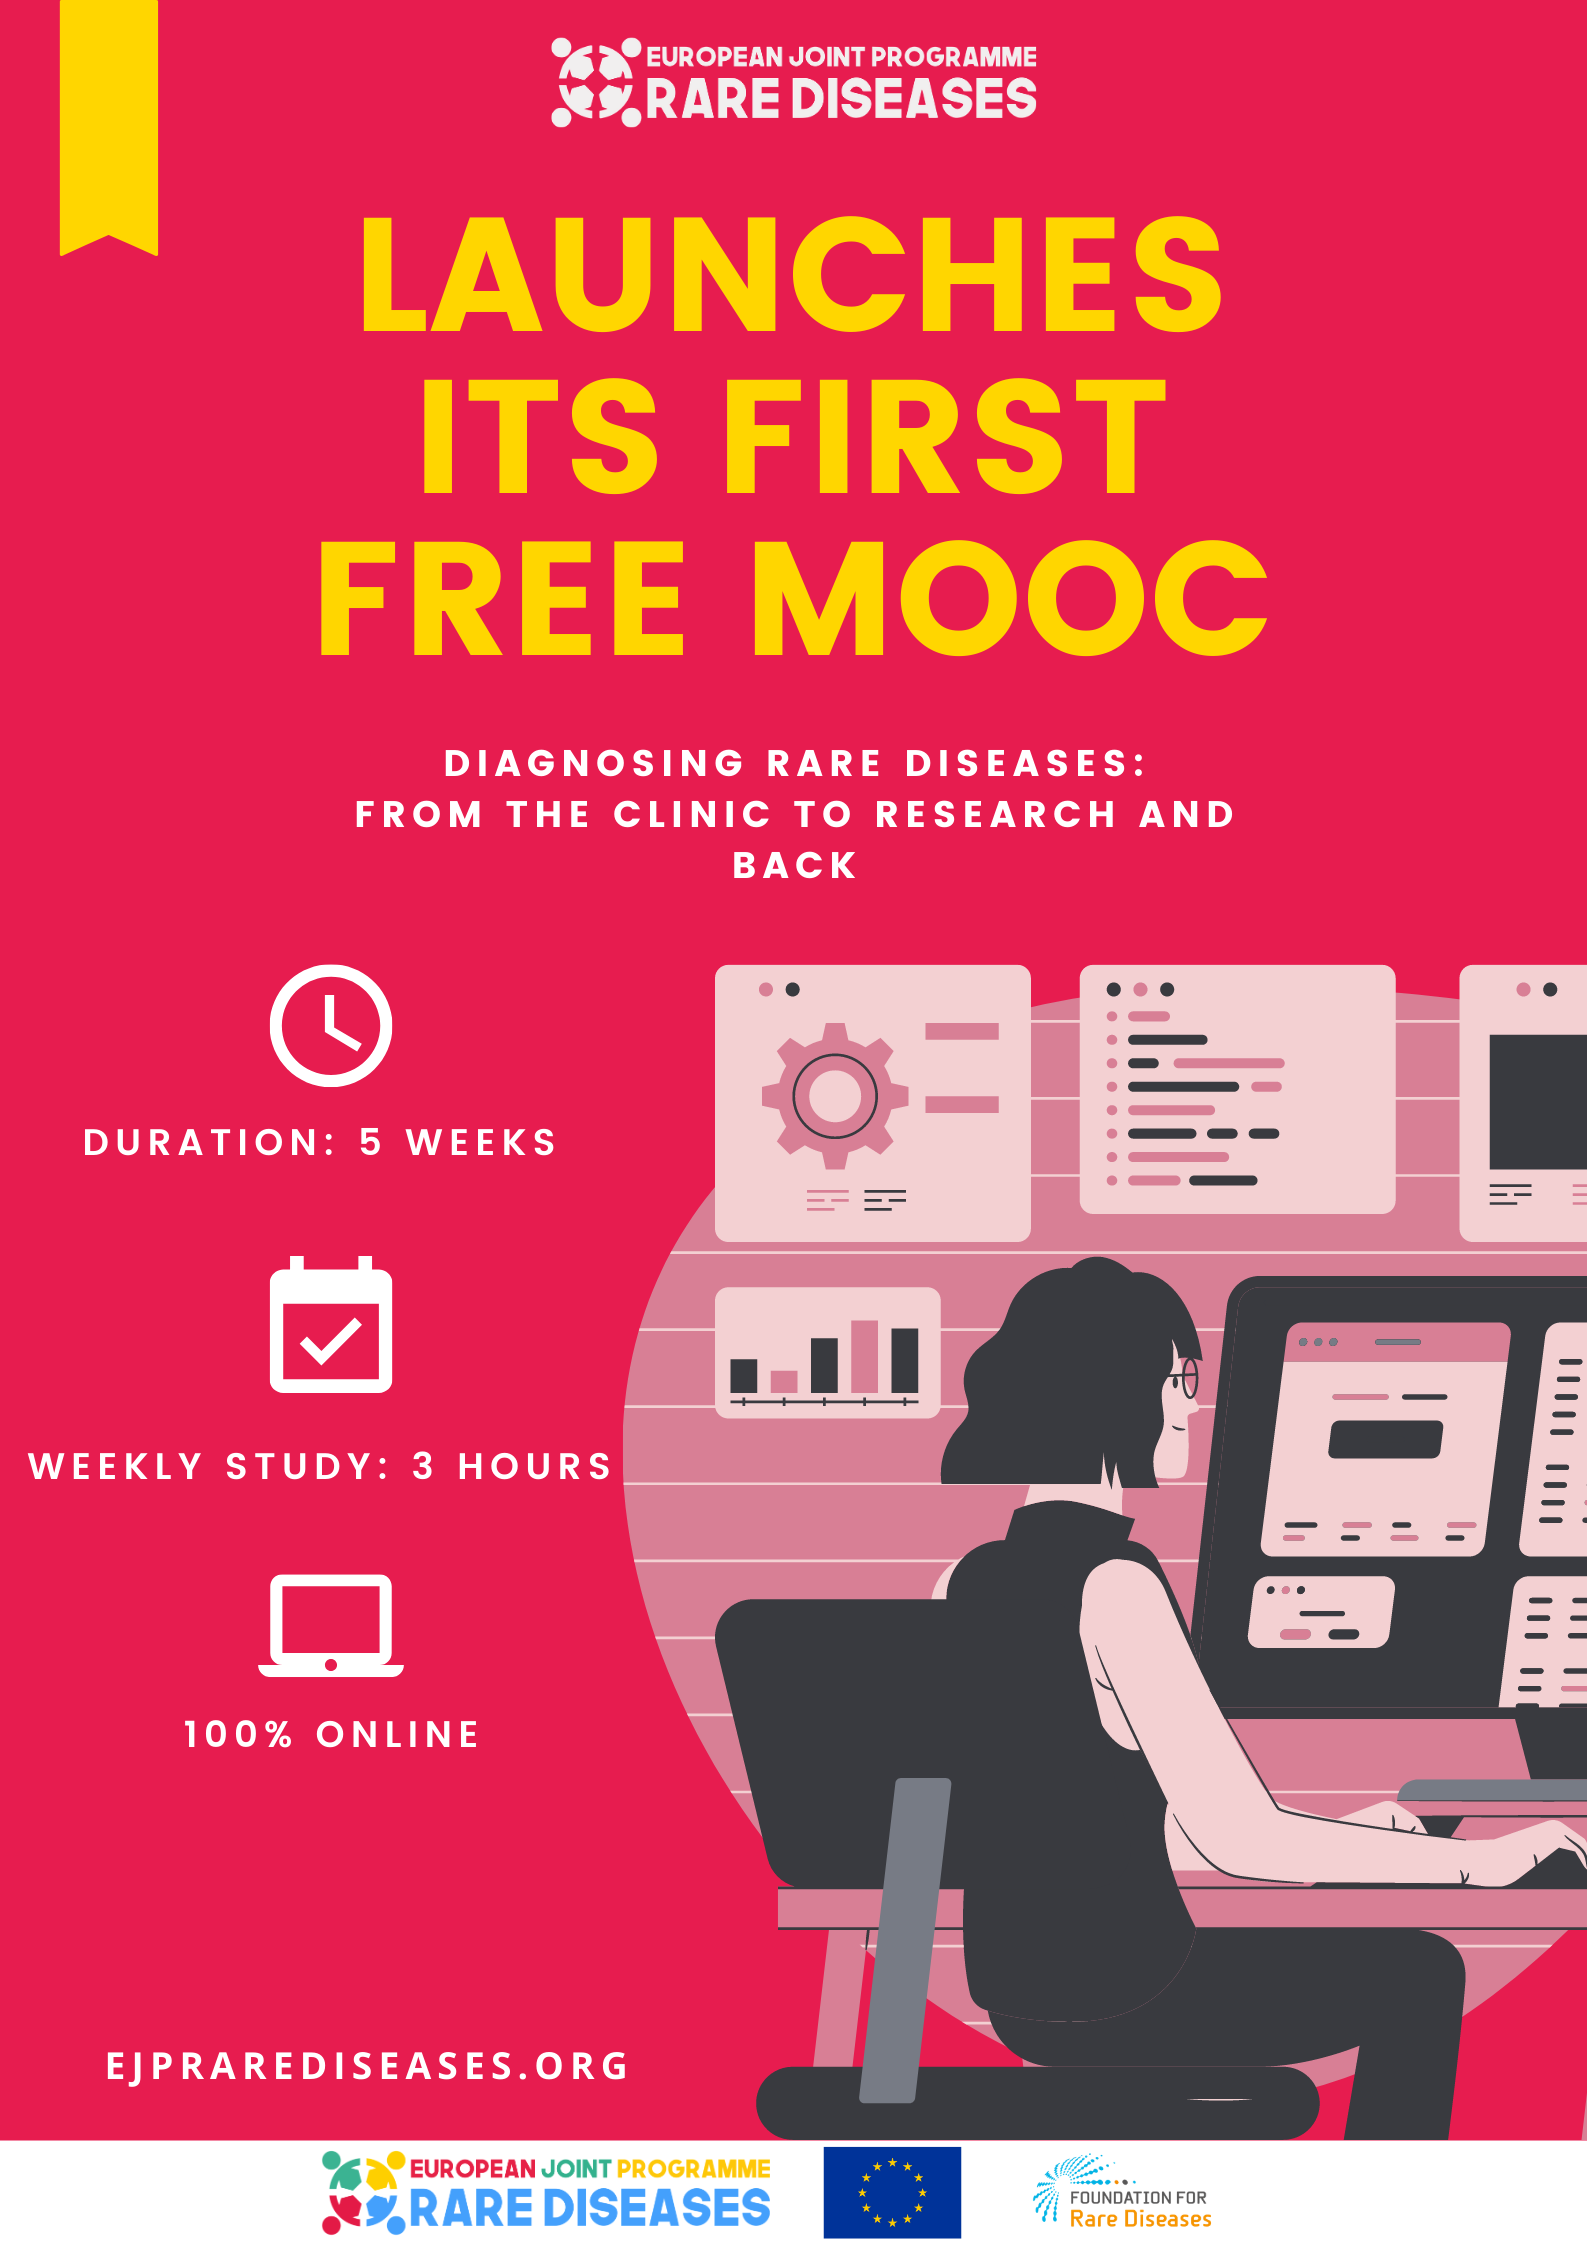 EJP-RD launches its first free MOOC!